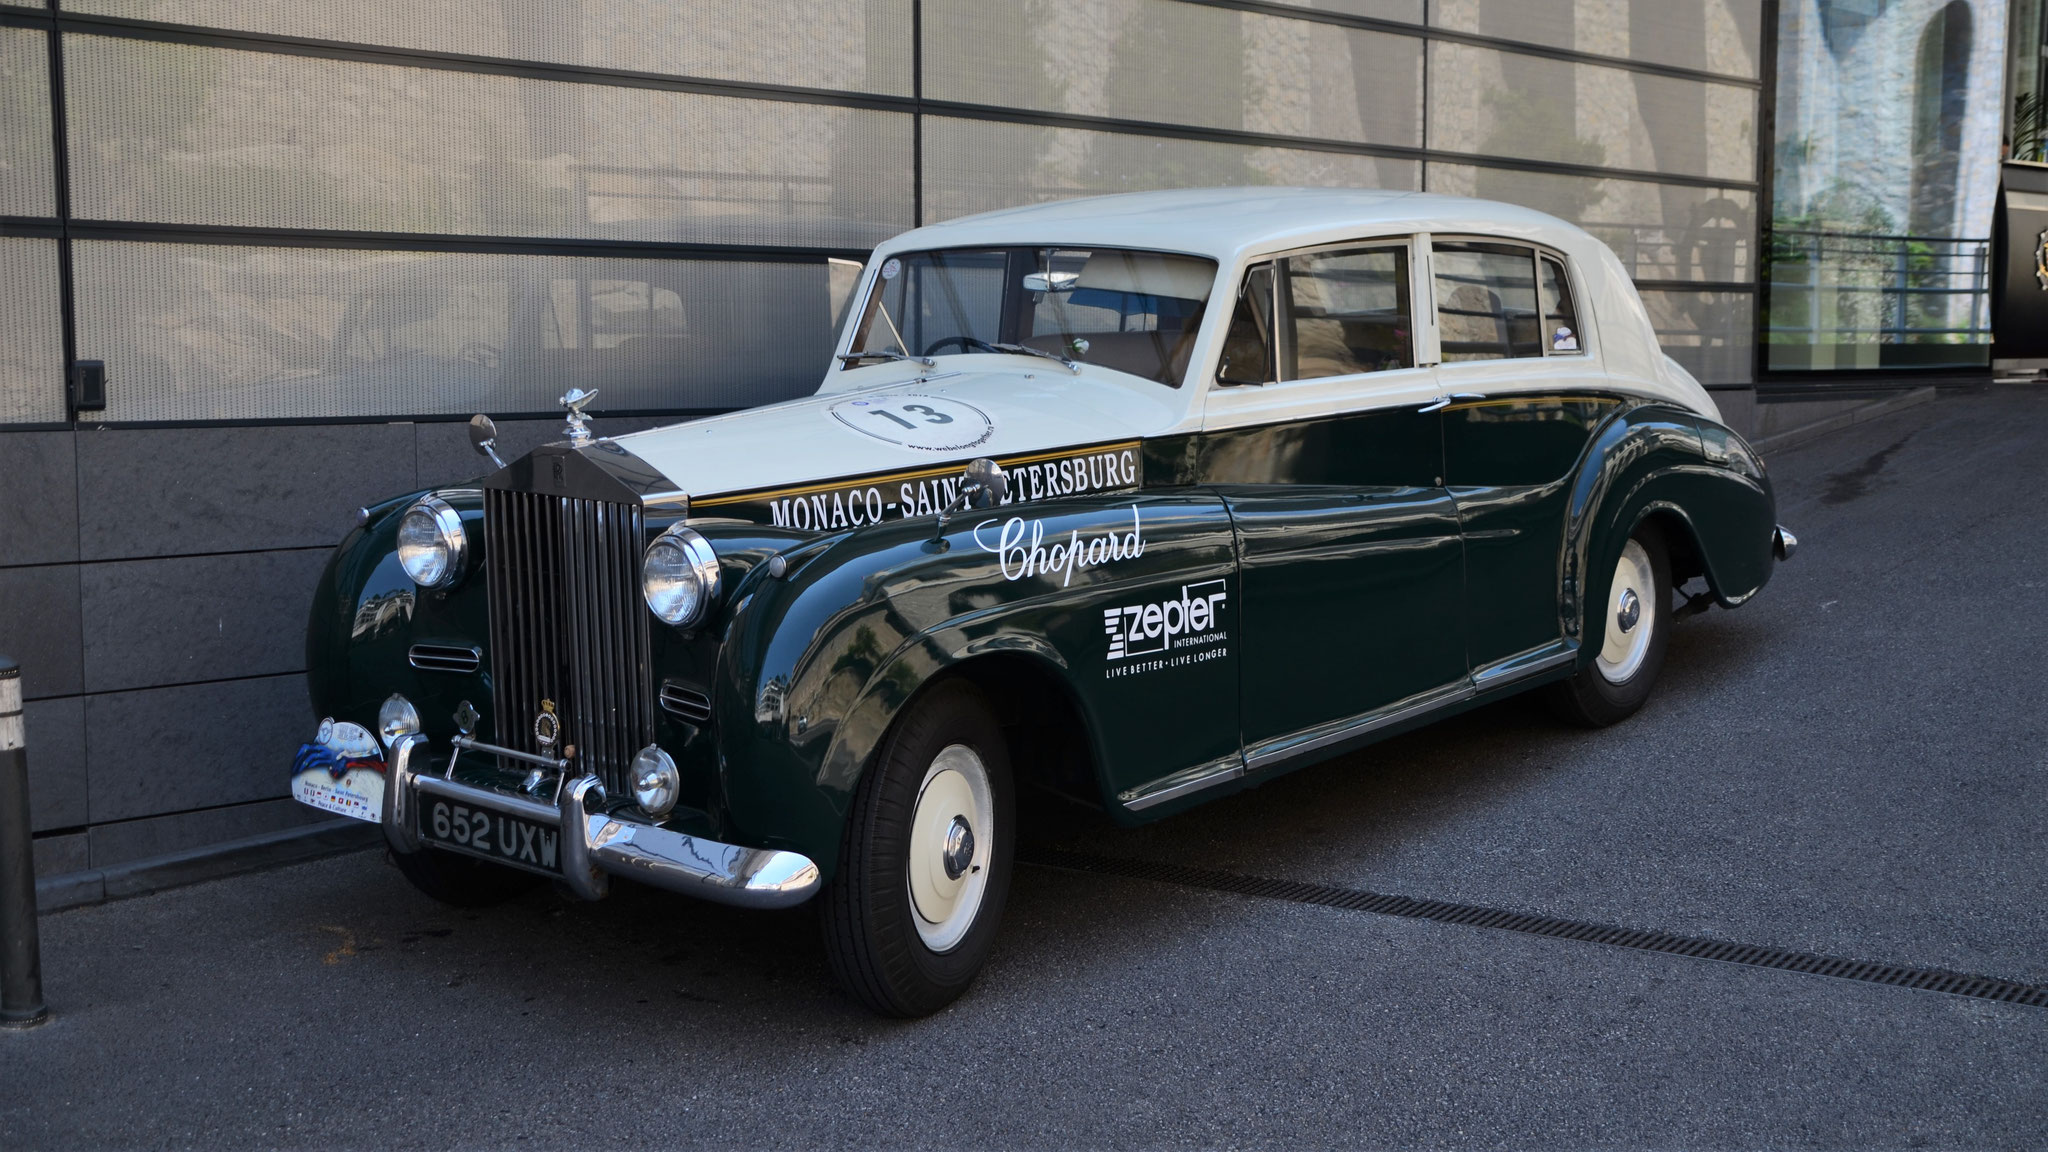 Rolls Royce Silver Cloud II - 652-UXW (GB)